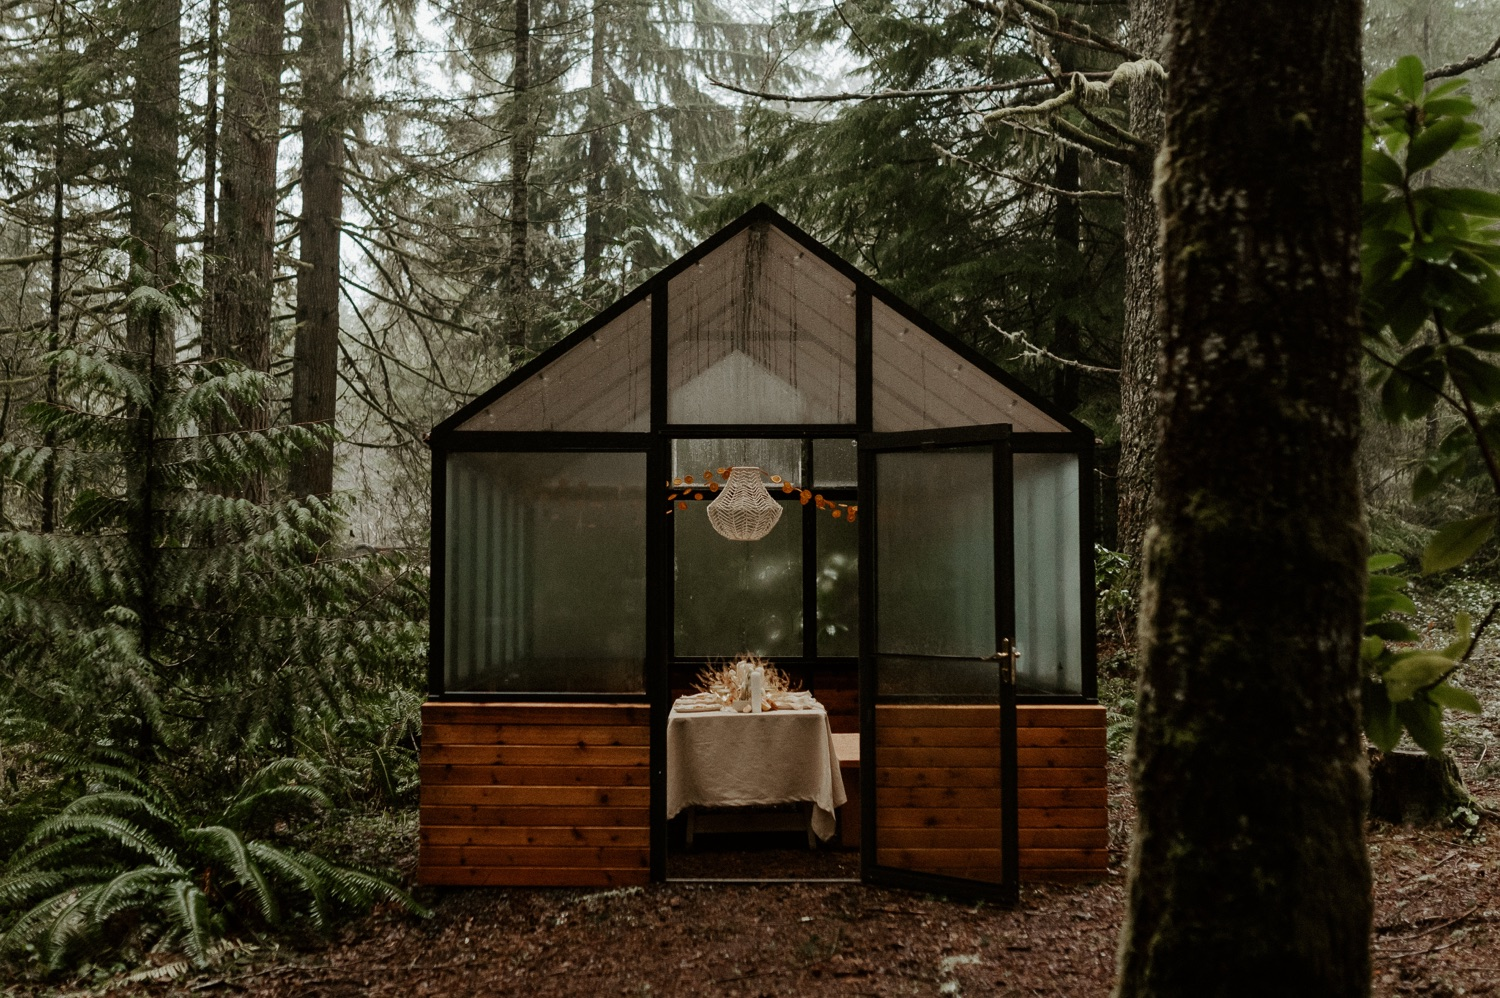 The Woodlands House Sandy Oregon Elopement Portland Elopement Photographer PNW Adventurous Elopement Anais Possamai Photography 003